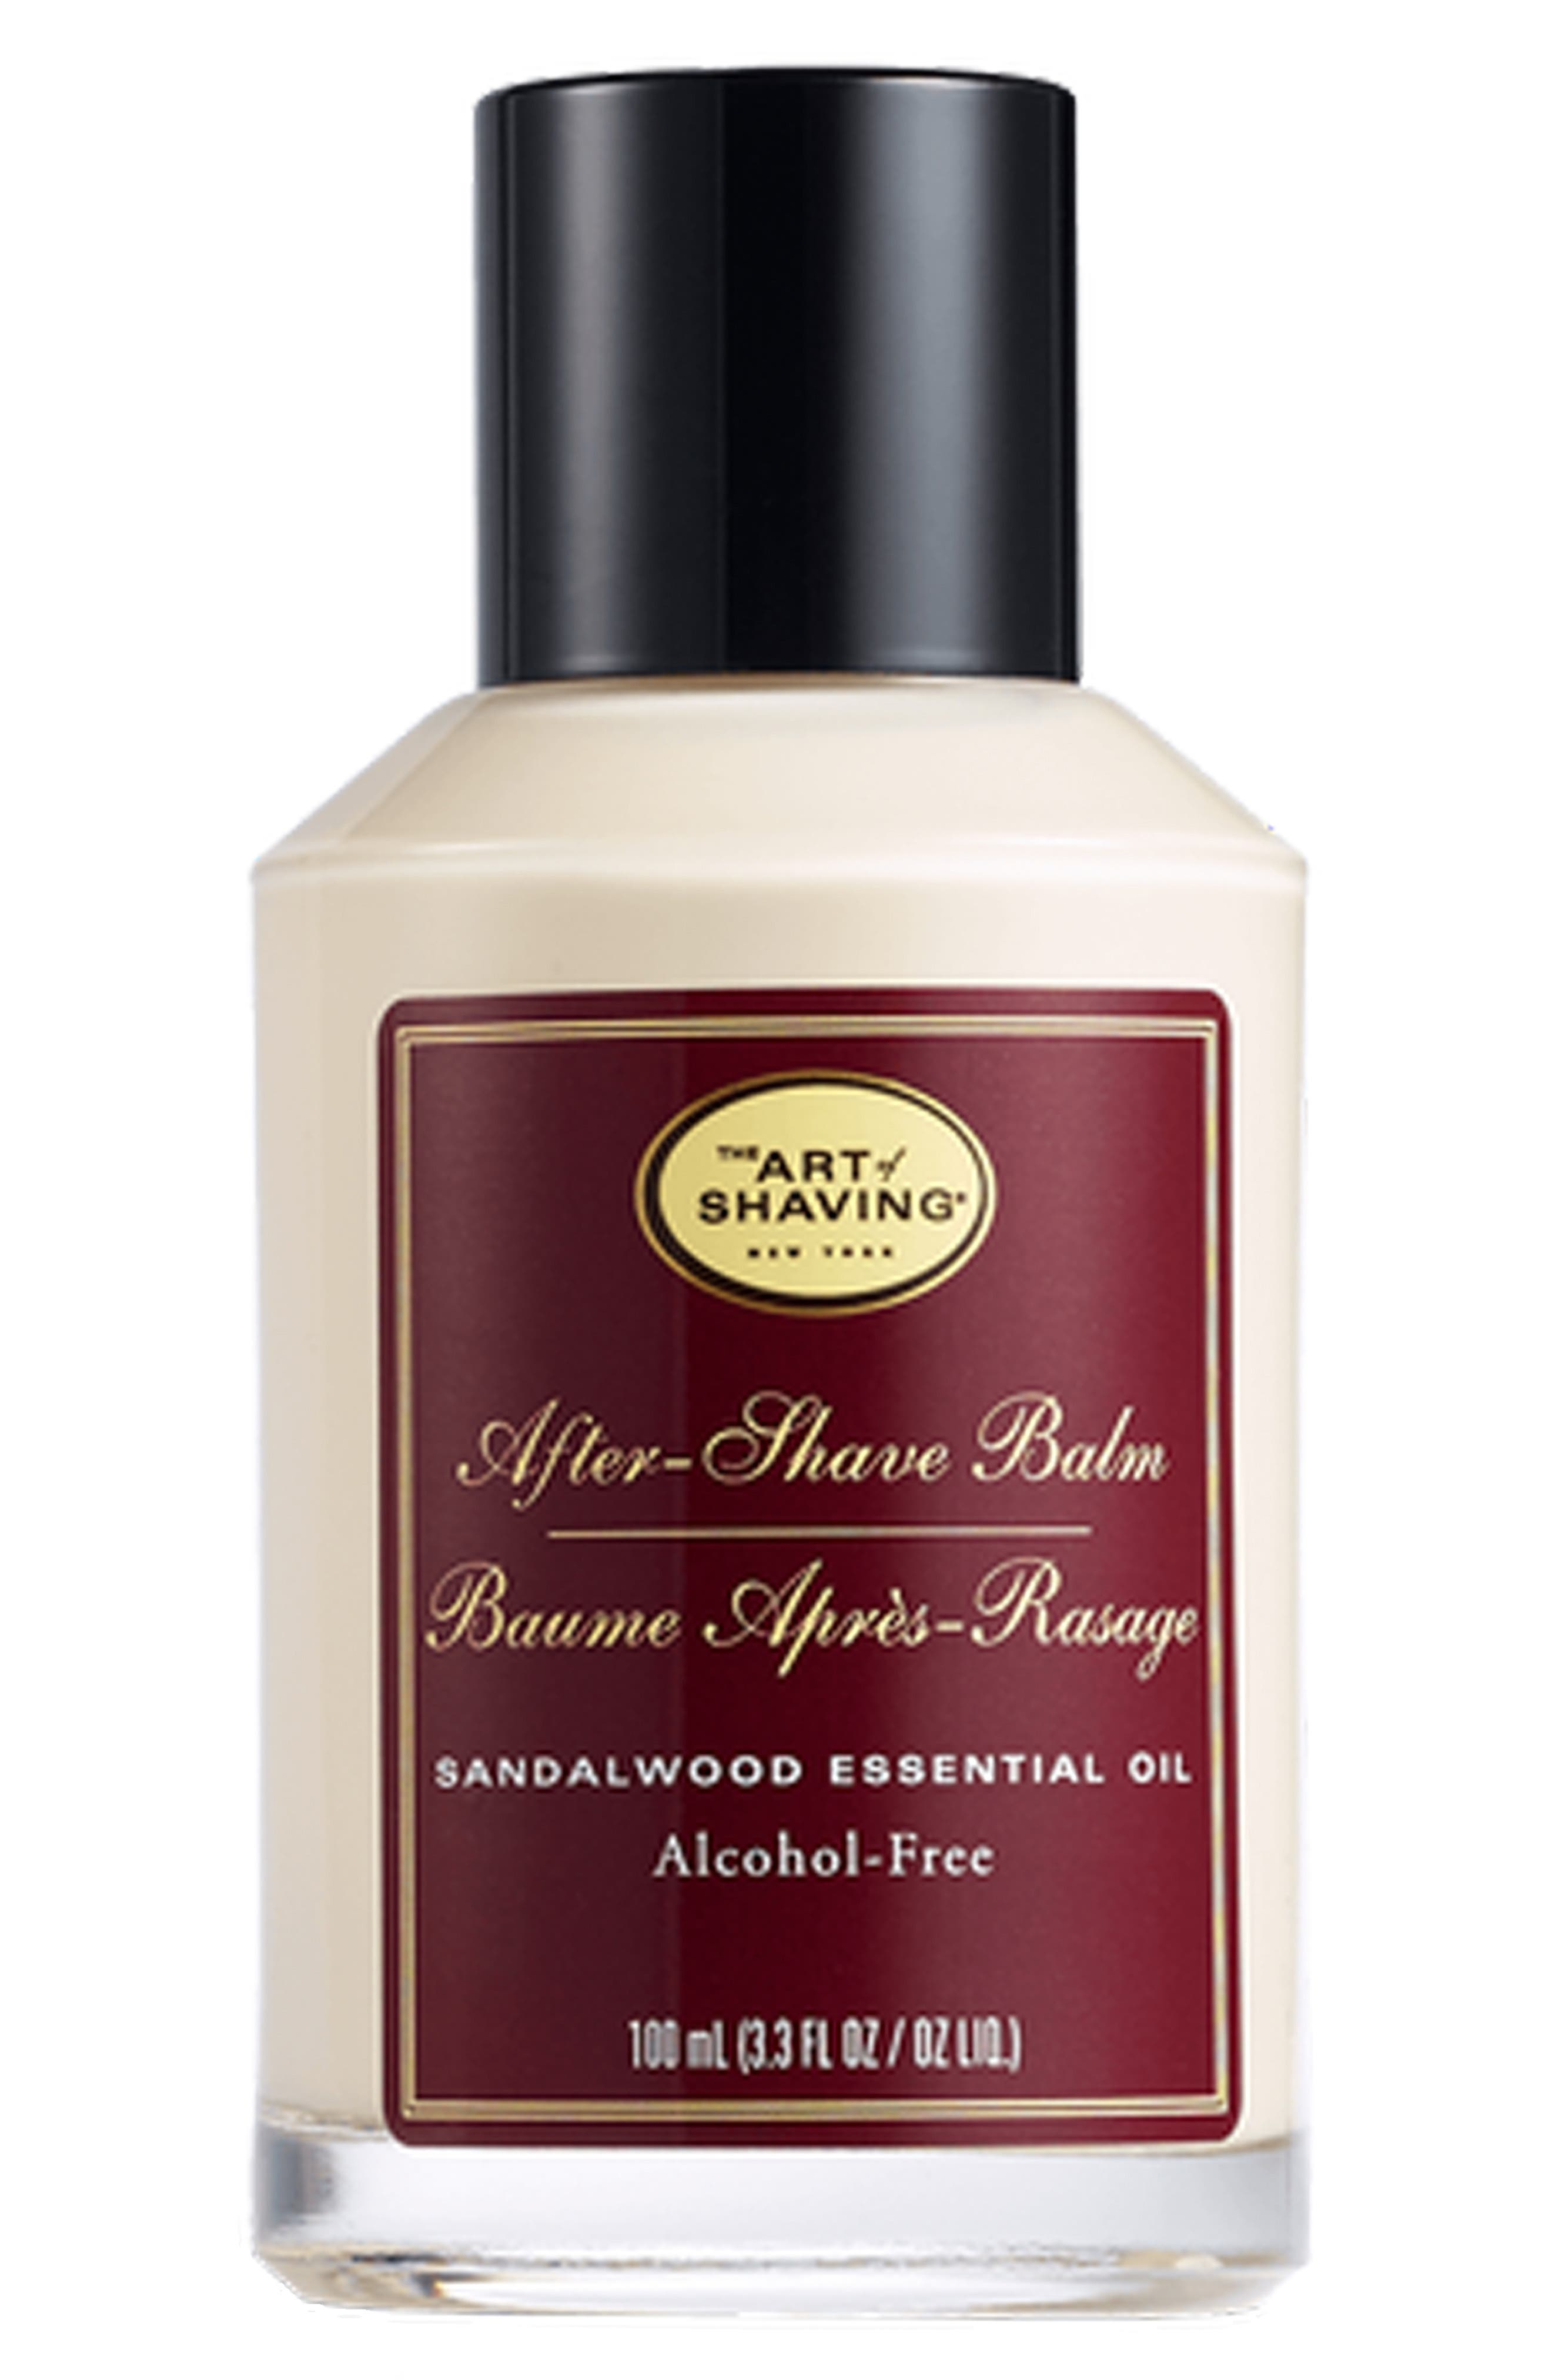 After-Shave Balm,                         Main,                         color, SANDALWOOD